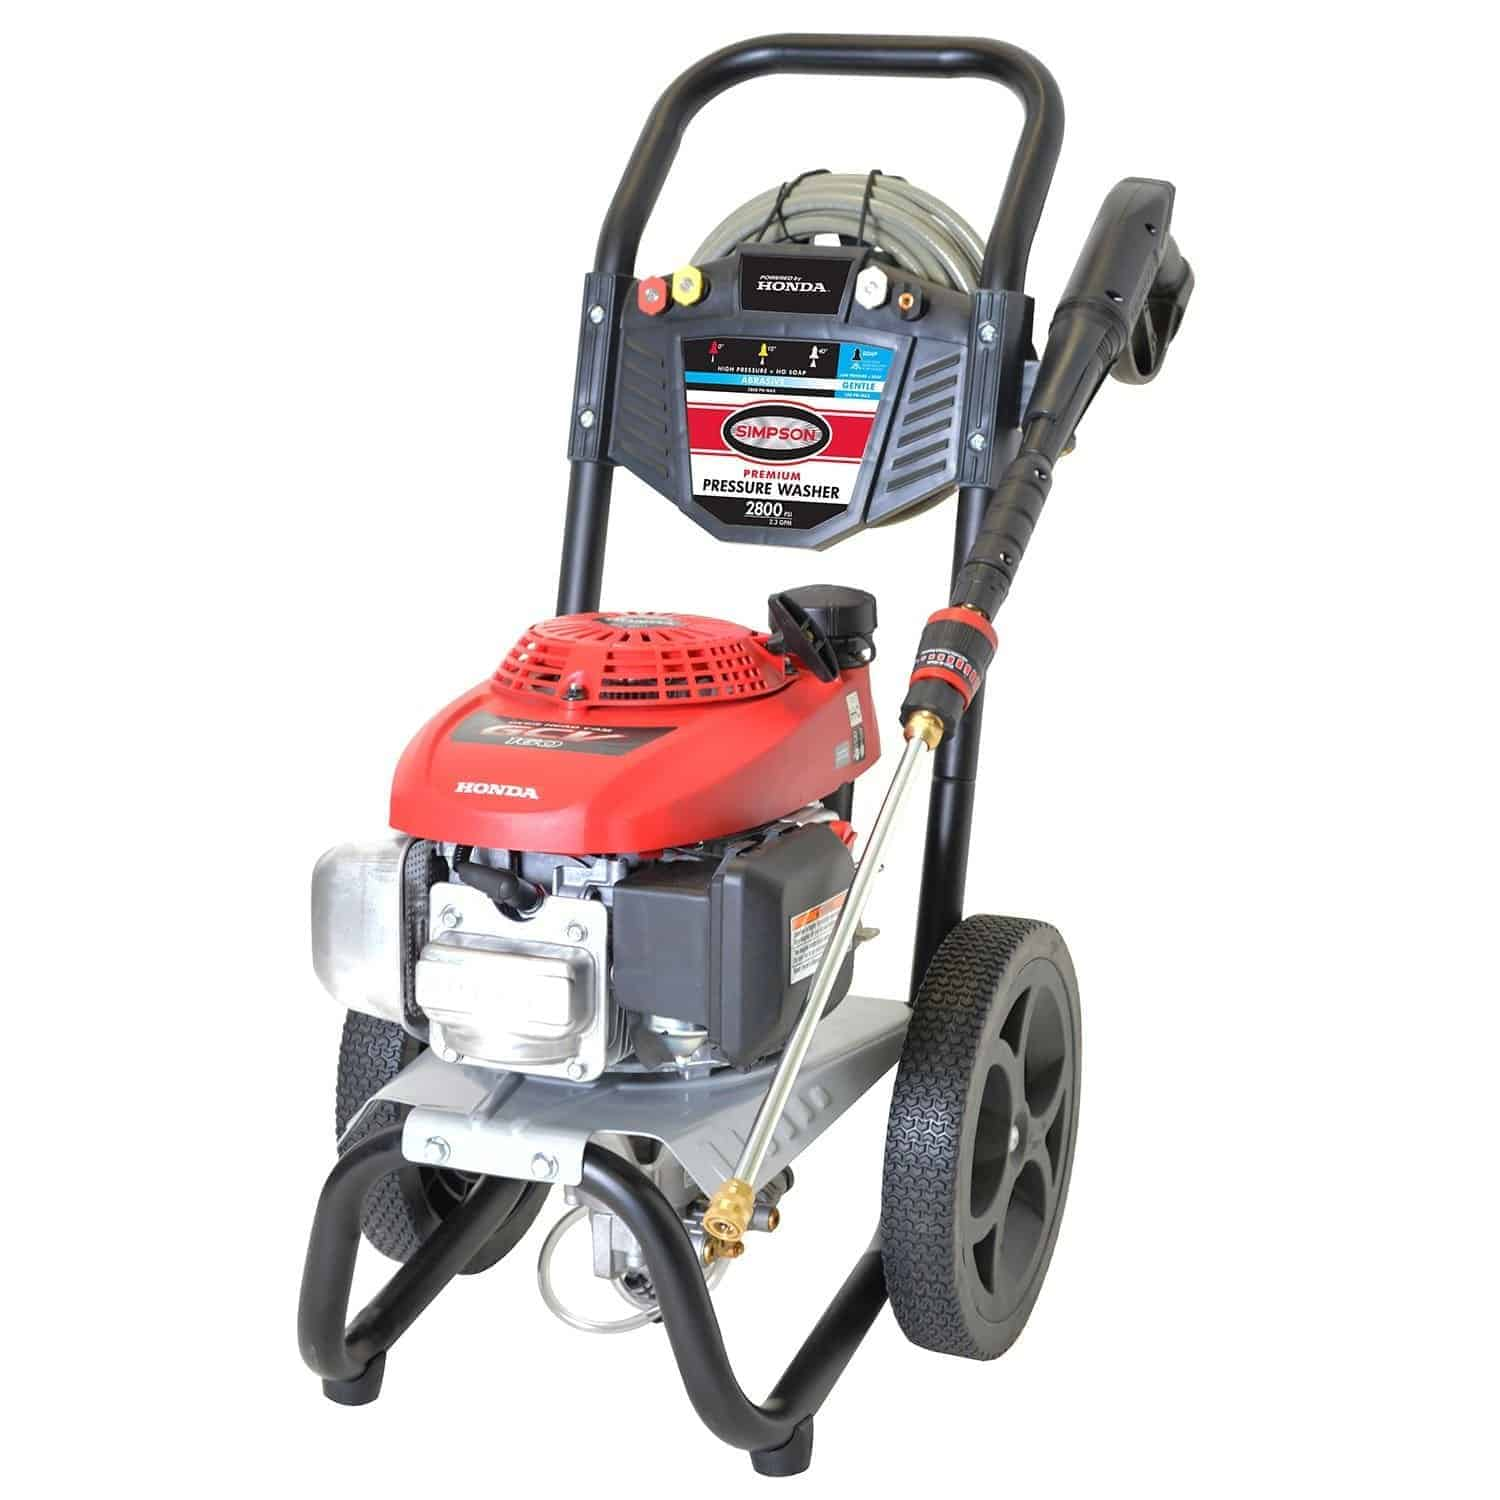 Simpson MegaShot 2800 PSI 2.3 GPM Gas Pressure Washer Powered by HONDA GCV160 review